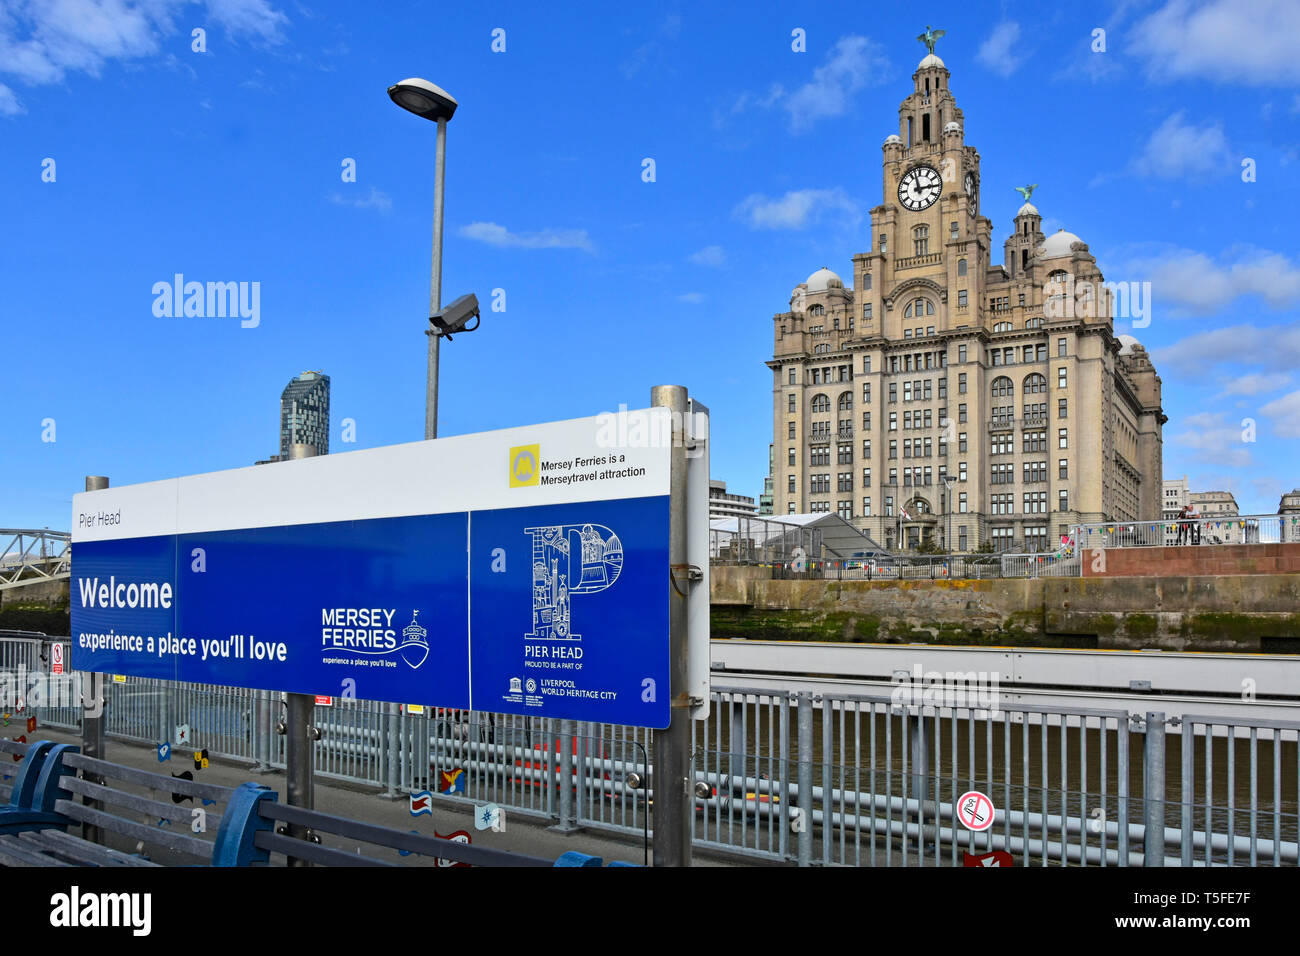 River Mersey Ferry Pier Head waterfront passenger landing stage welcome sign  The Royal Liver Building beyond City of Liverpool Merseyside England UK - Stock Image